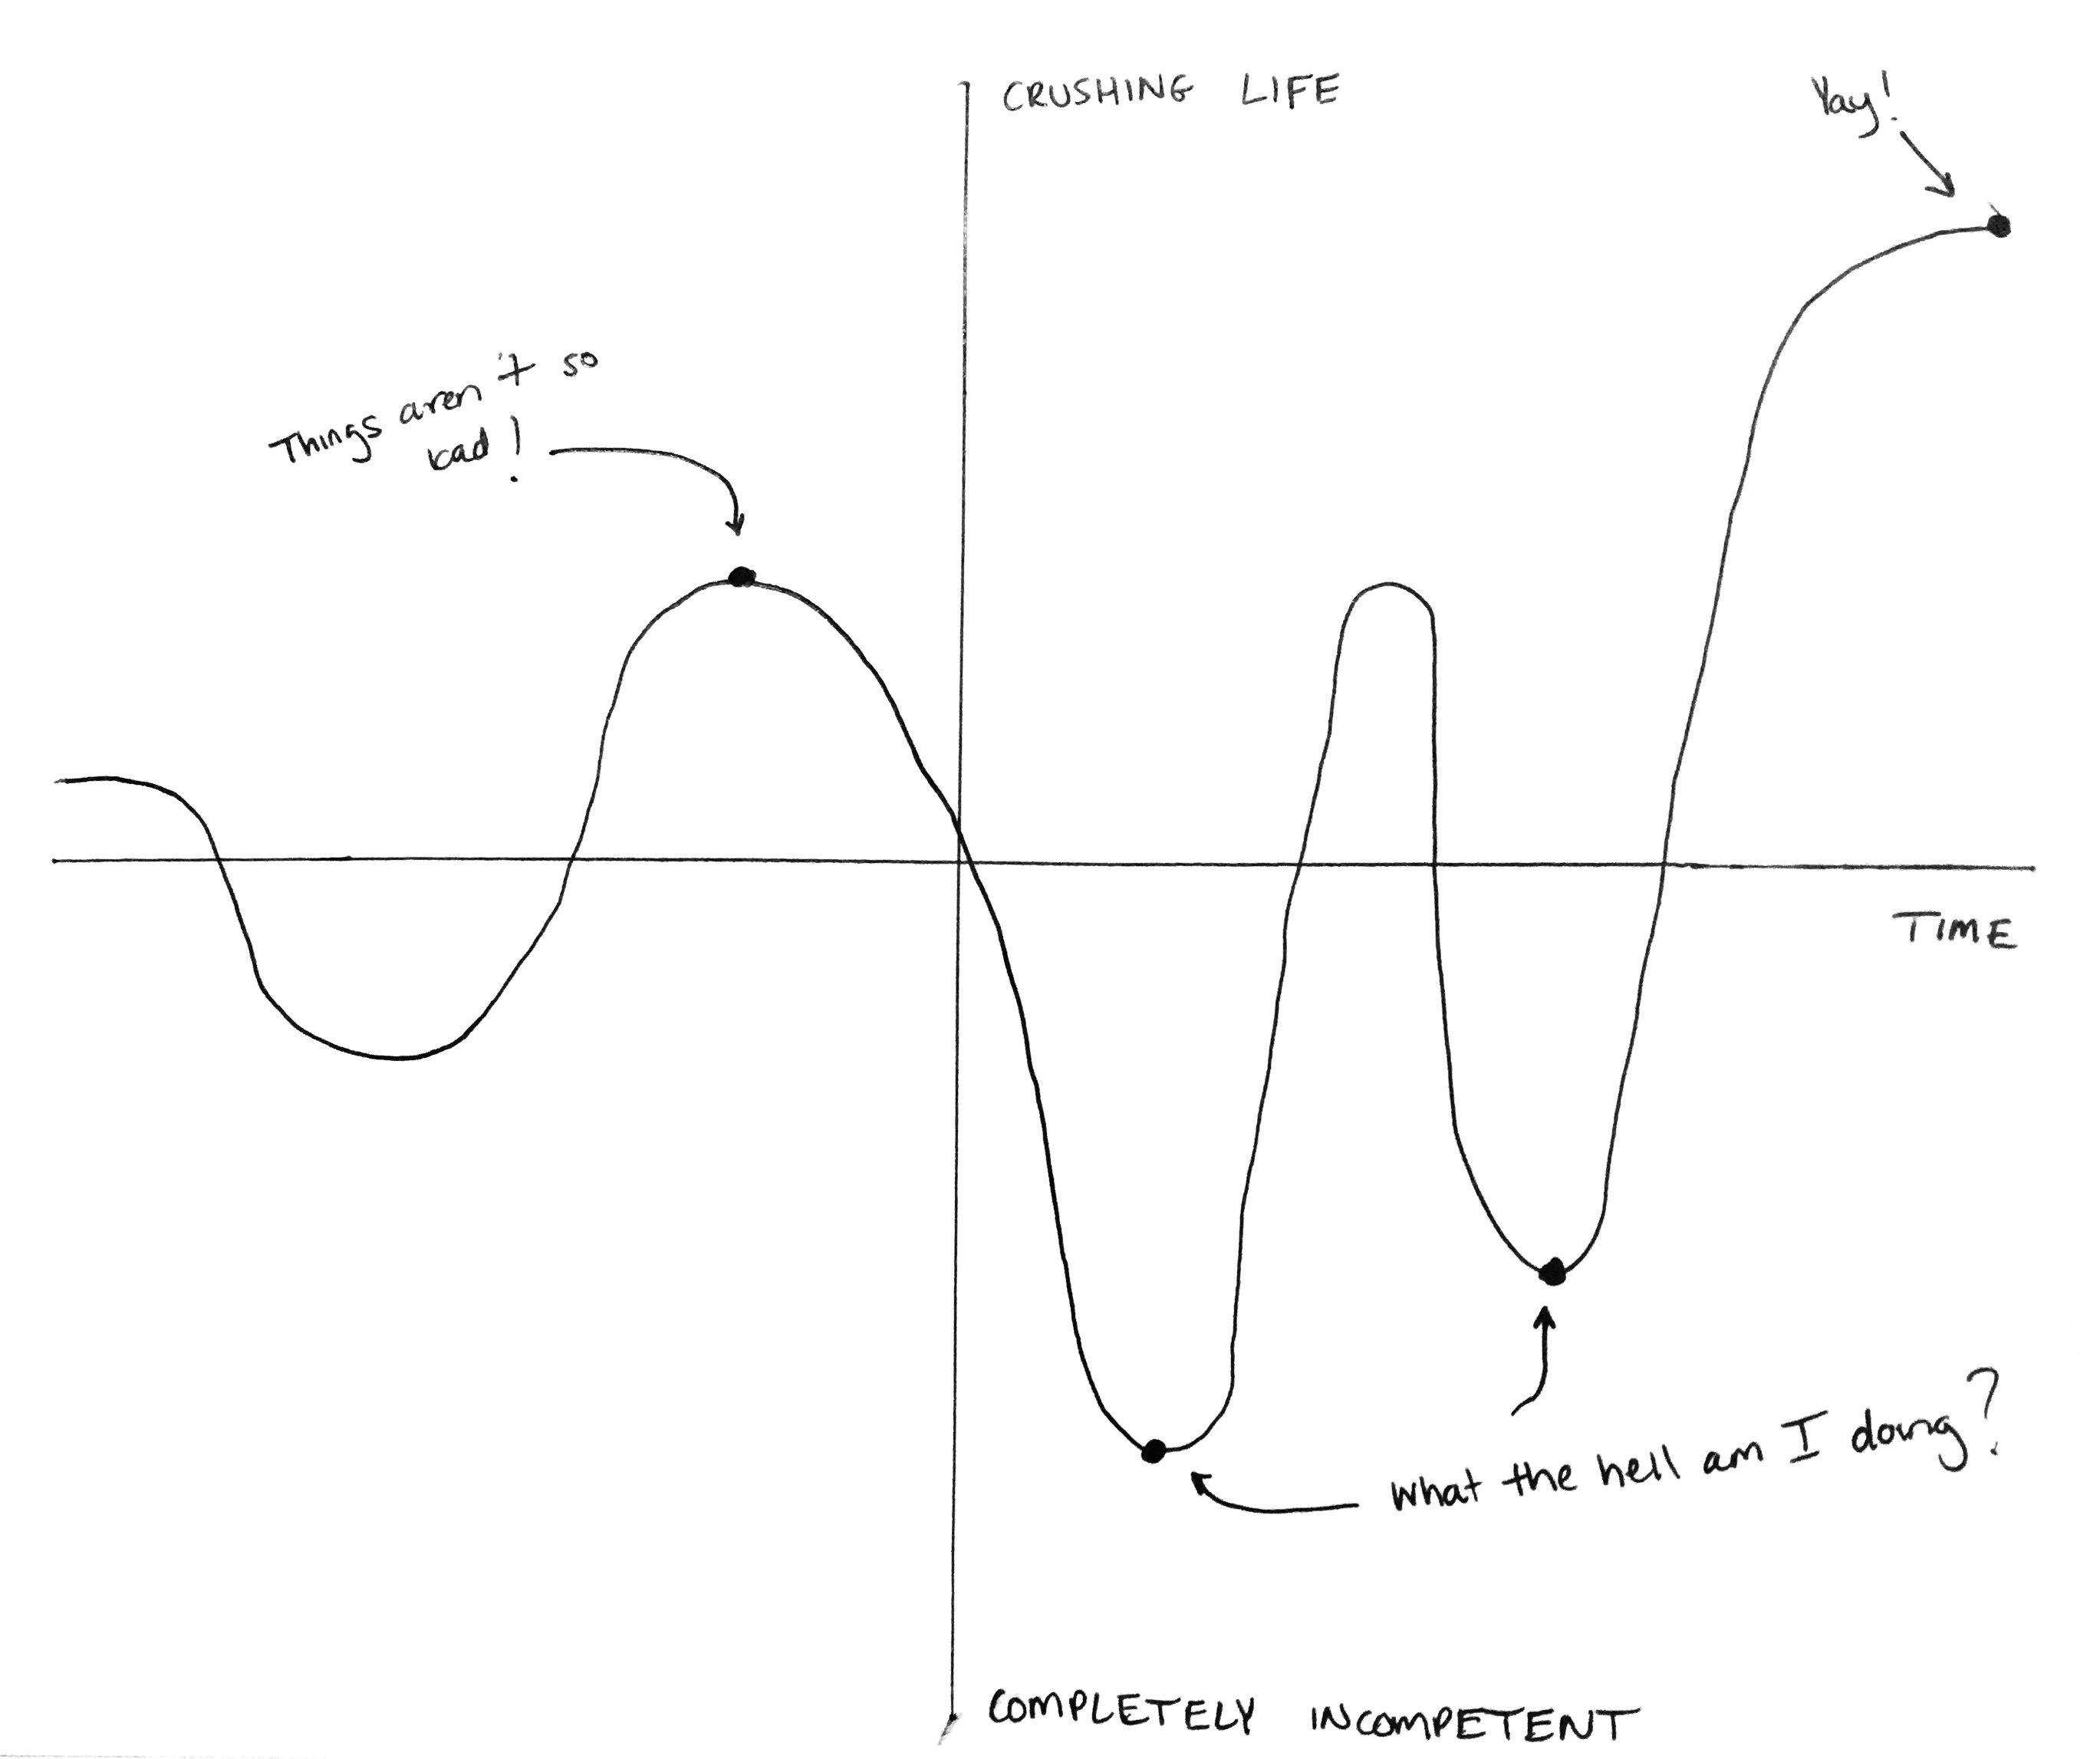 A graph depicting the highs and lows of leadership